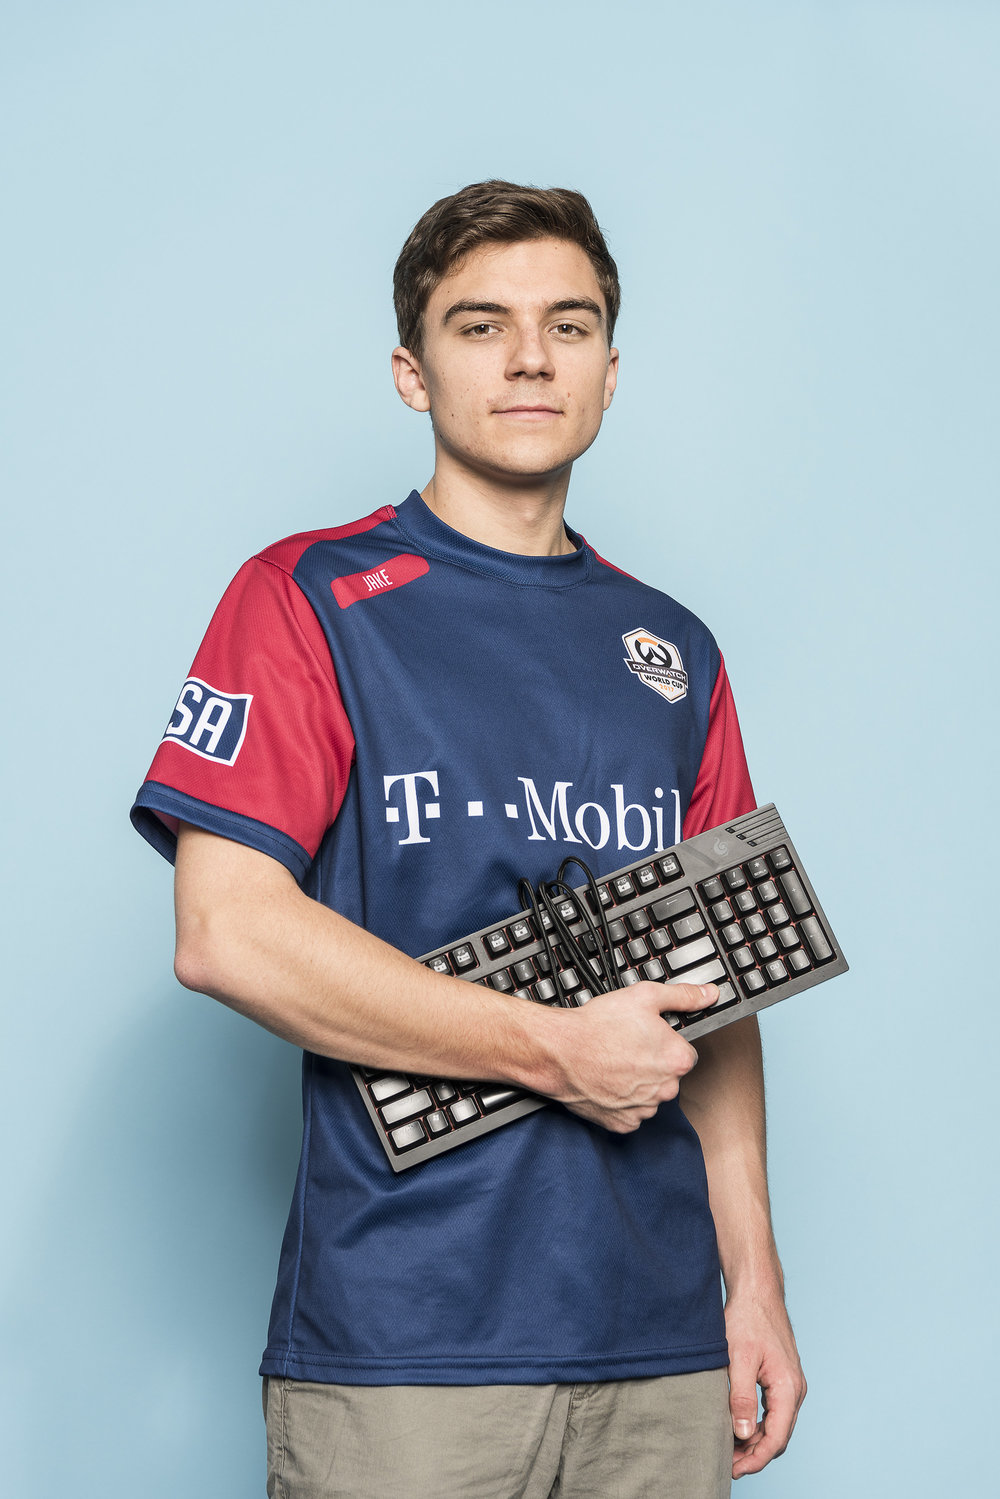 Professional Gamer for WIRED Magazine.